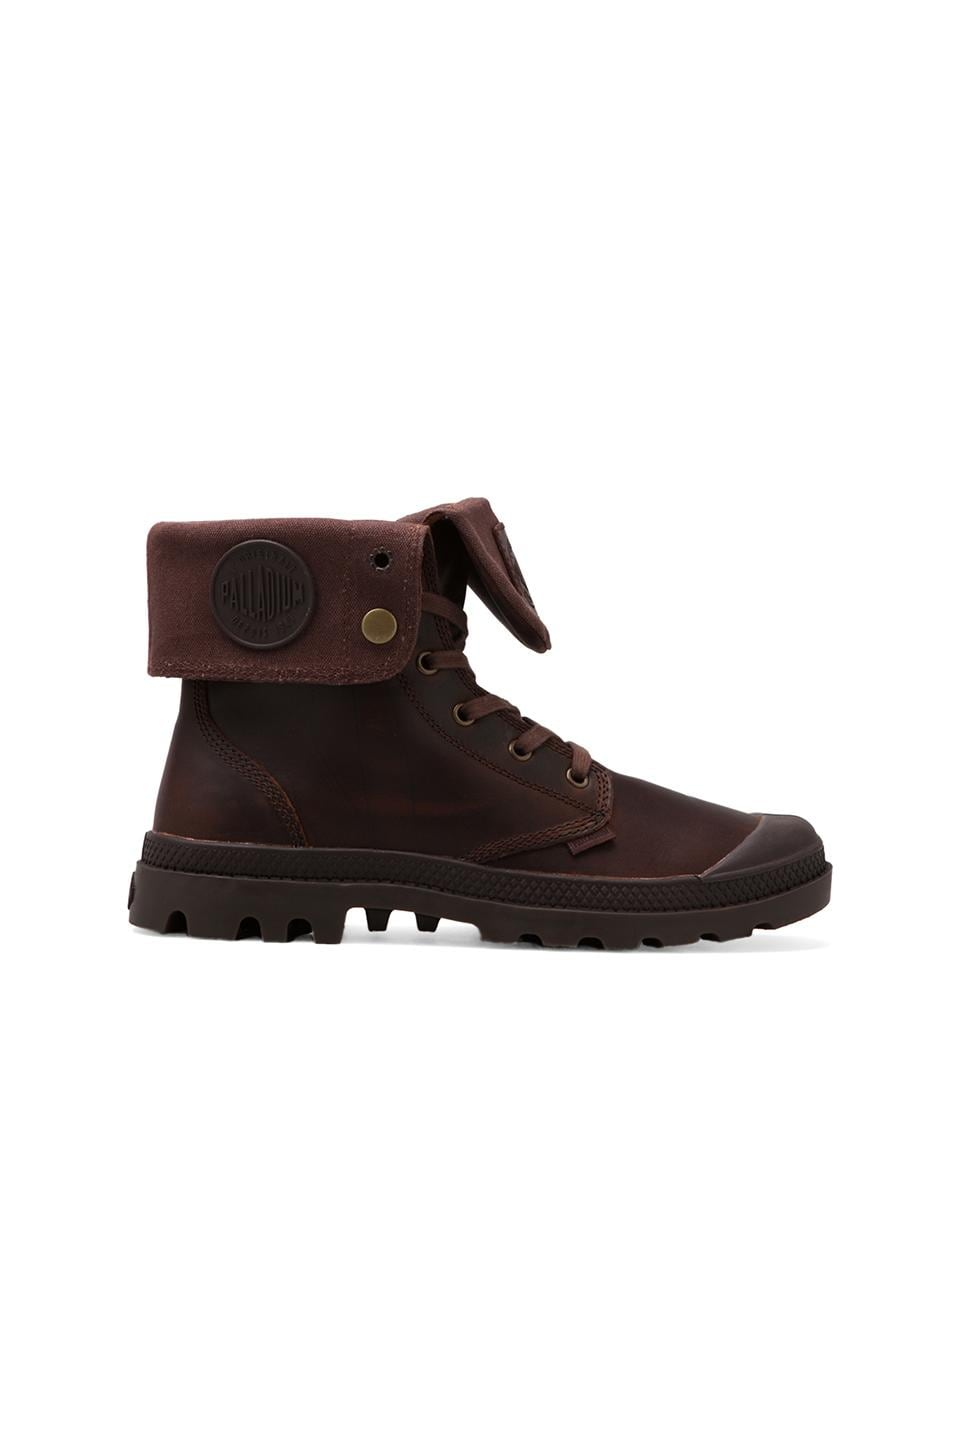 Palladium Palladium Pallabrouse Baggy Leather in Russet/Dark Gum